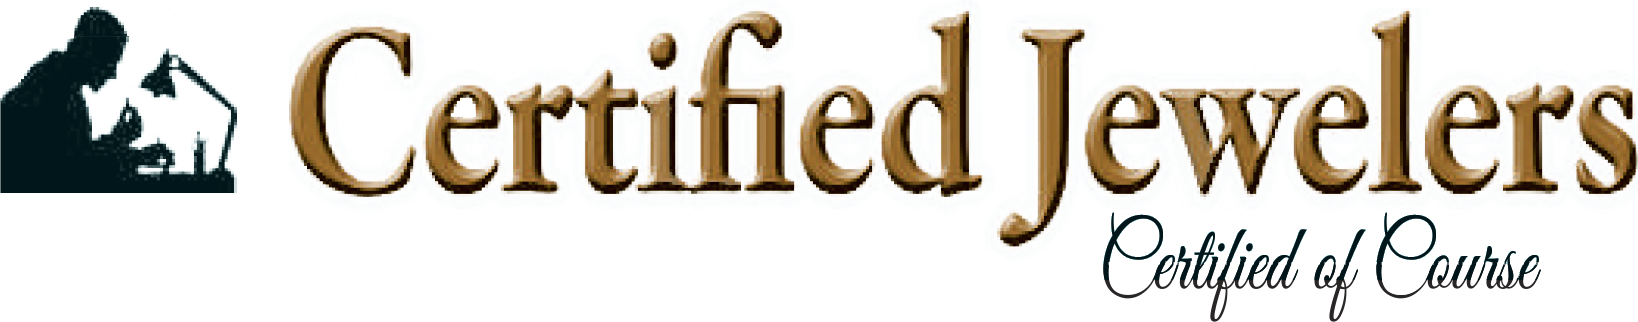 certified jewelers logo